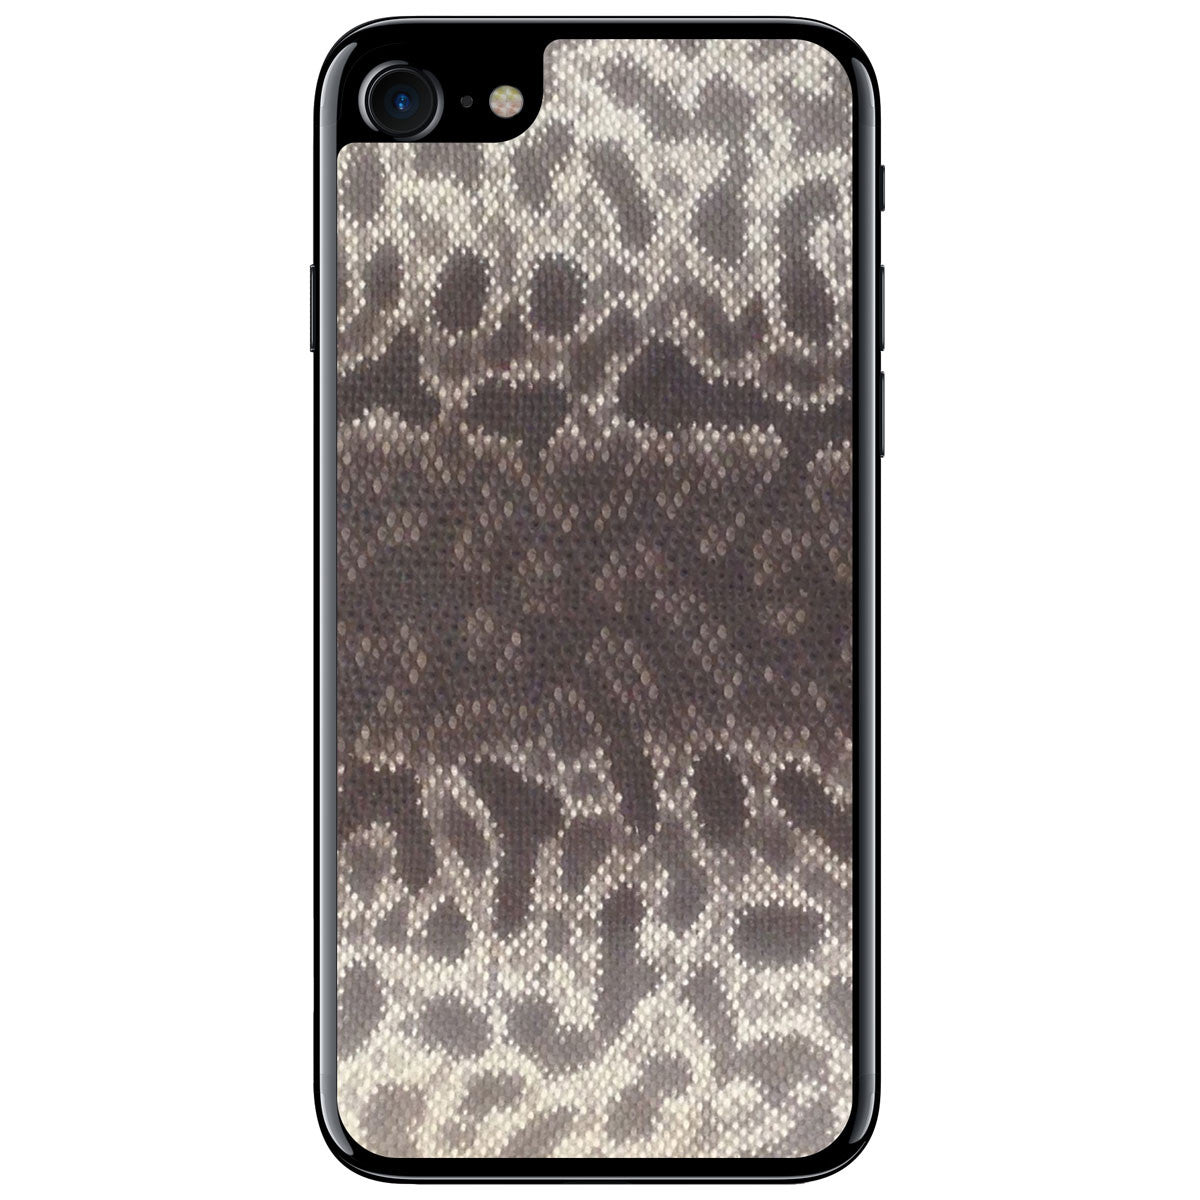 Karung Snake iPhone 8 Leather Skin